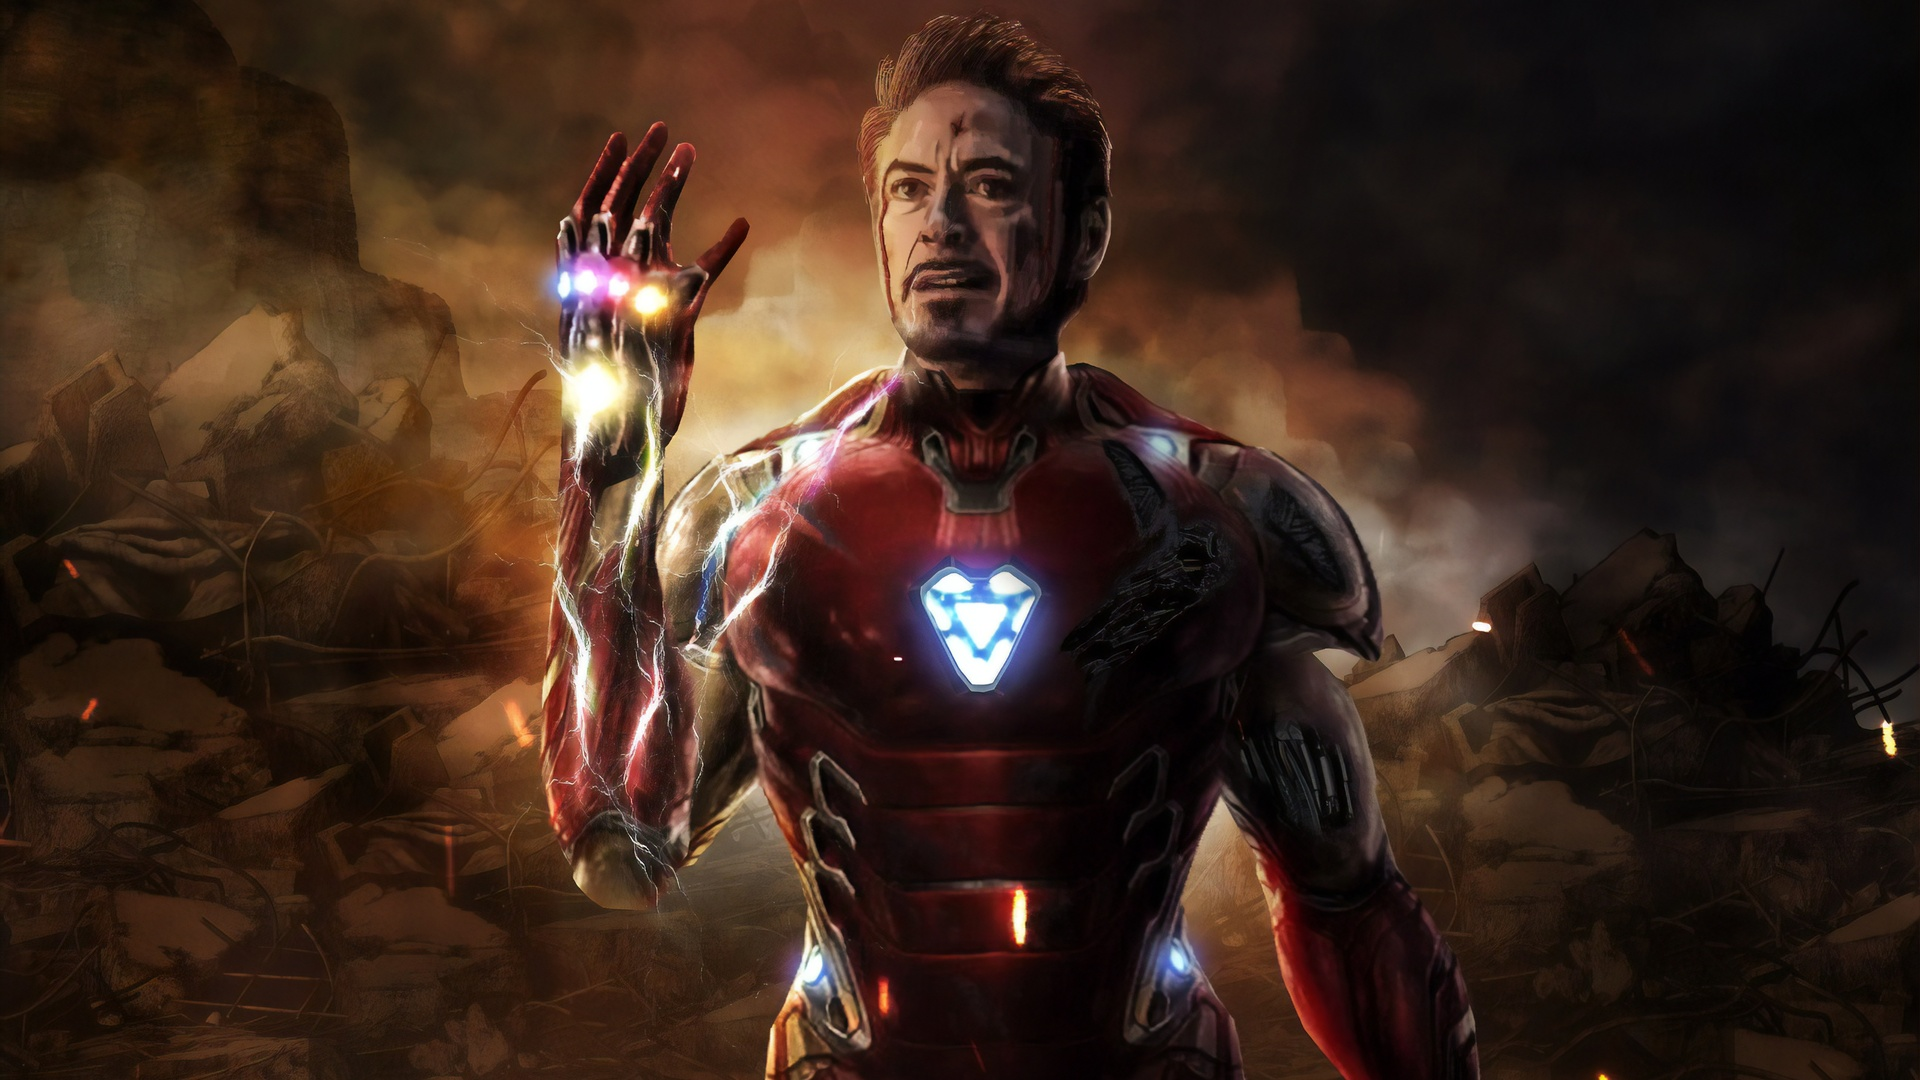 1920x1080 I Am Iron Man Avengers Endgame 5k Laptop Full HD